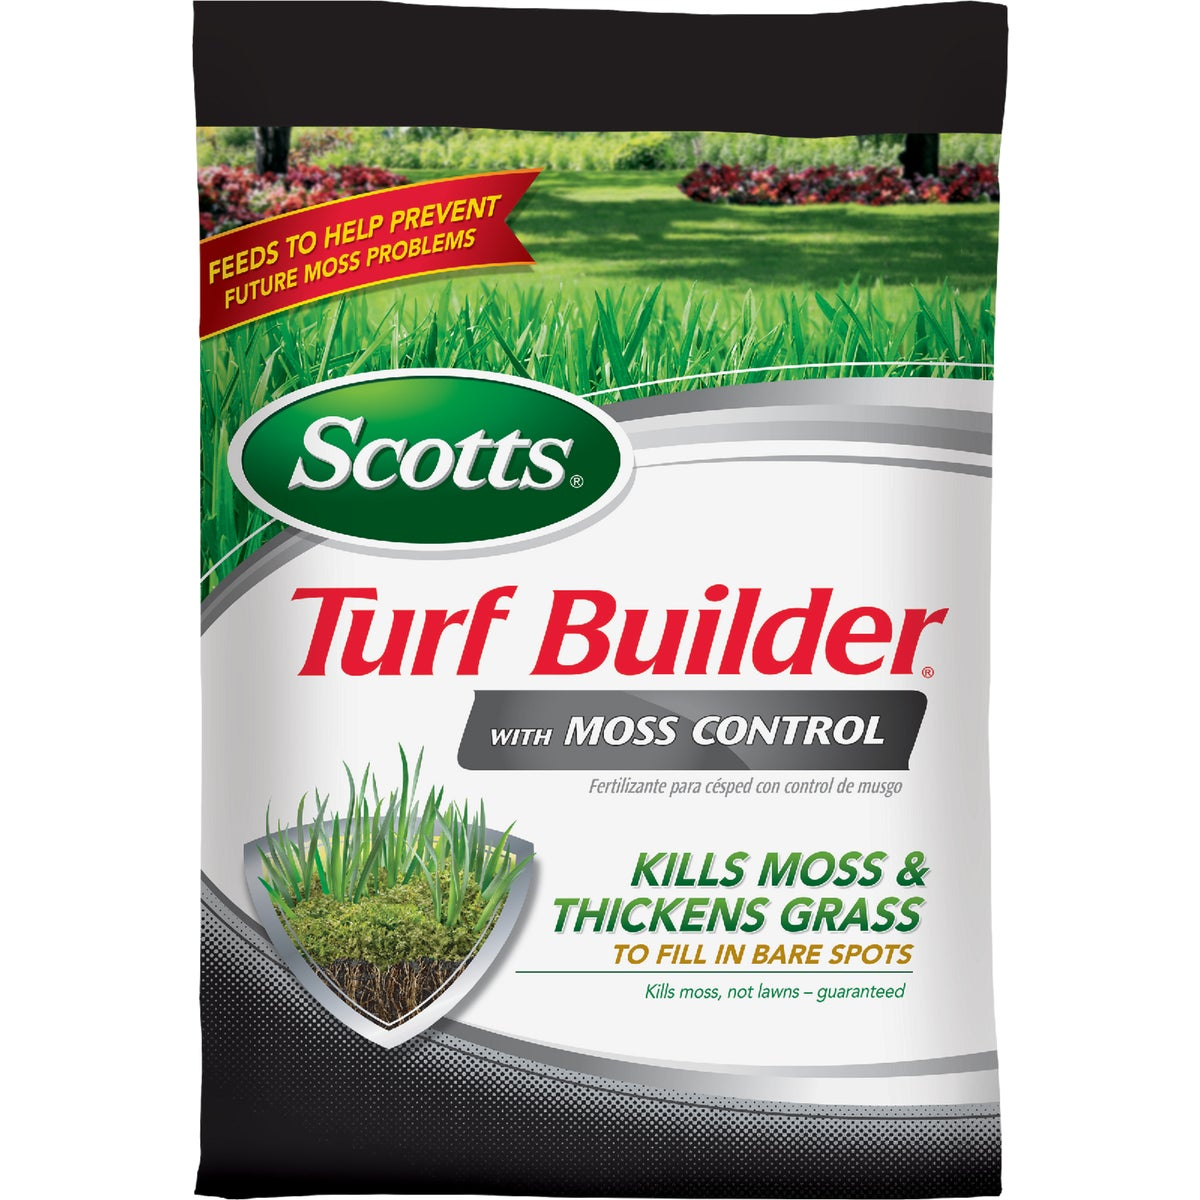 The Scotts Co. 5M FERT + MOSS CONTROL 33505